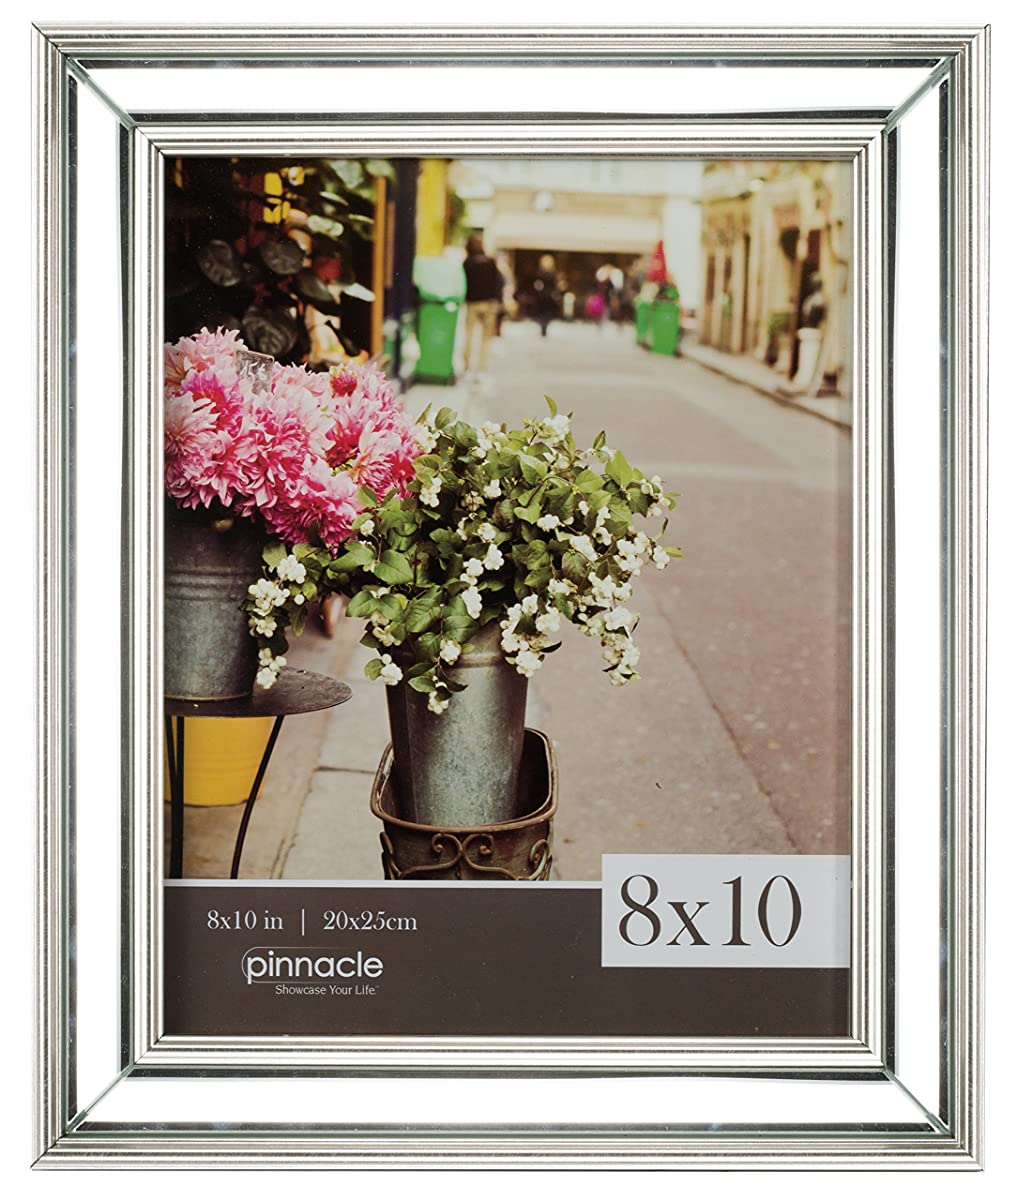 Pinnacle frames and accents 15fp1777 mirrored slant frame clear jeuxipadfo Choice Image